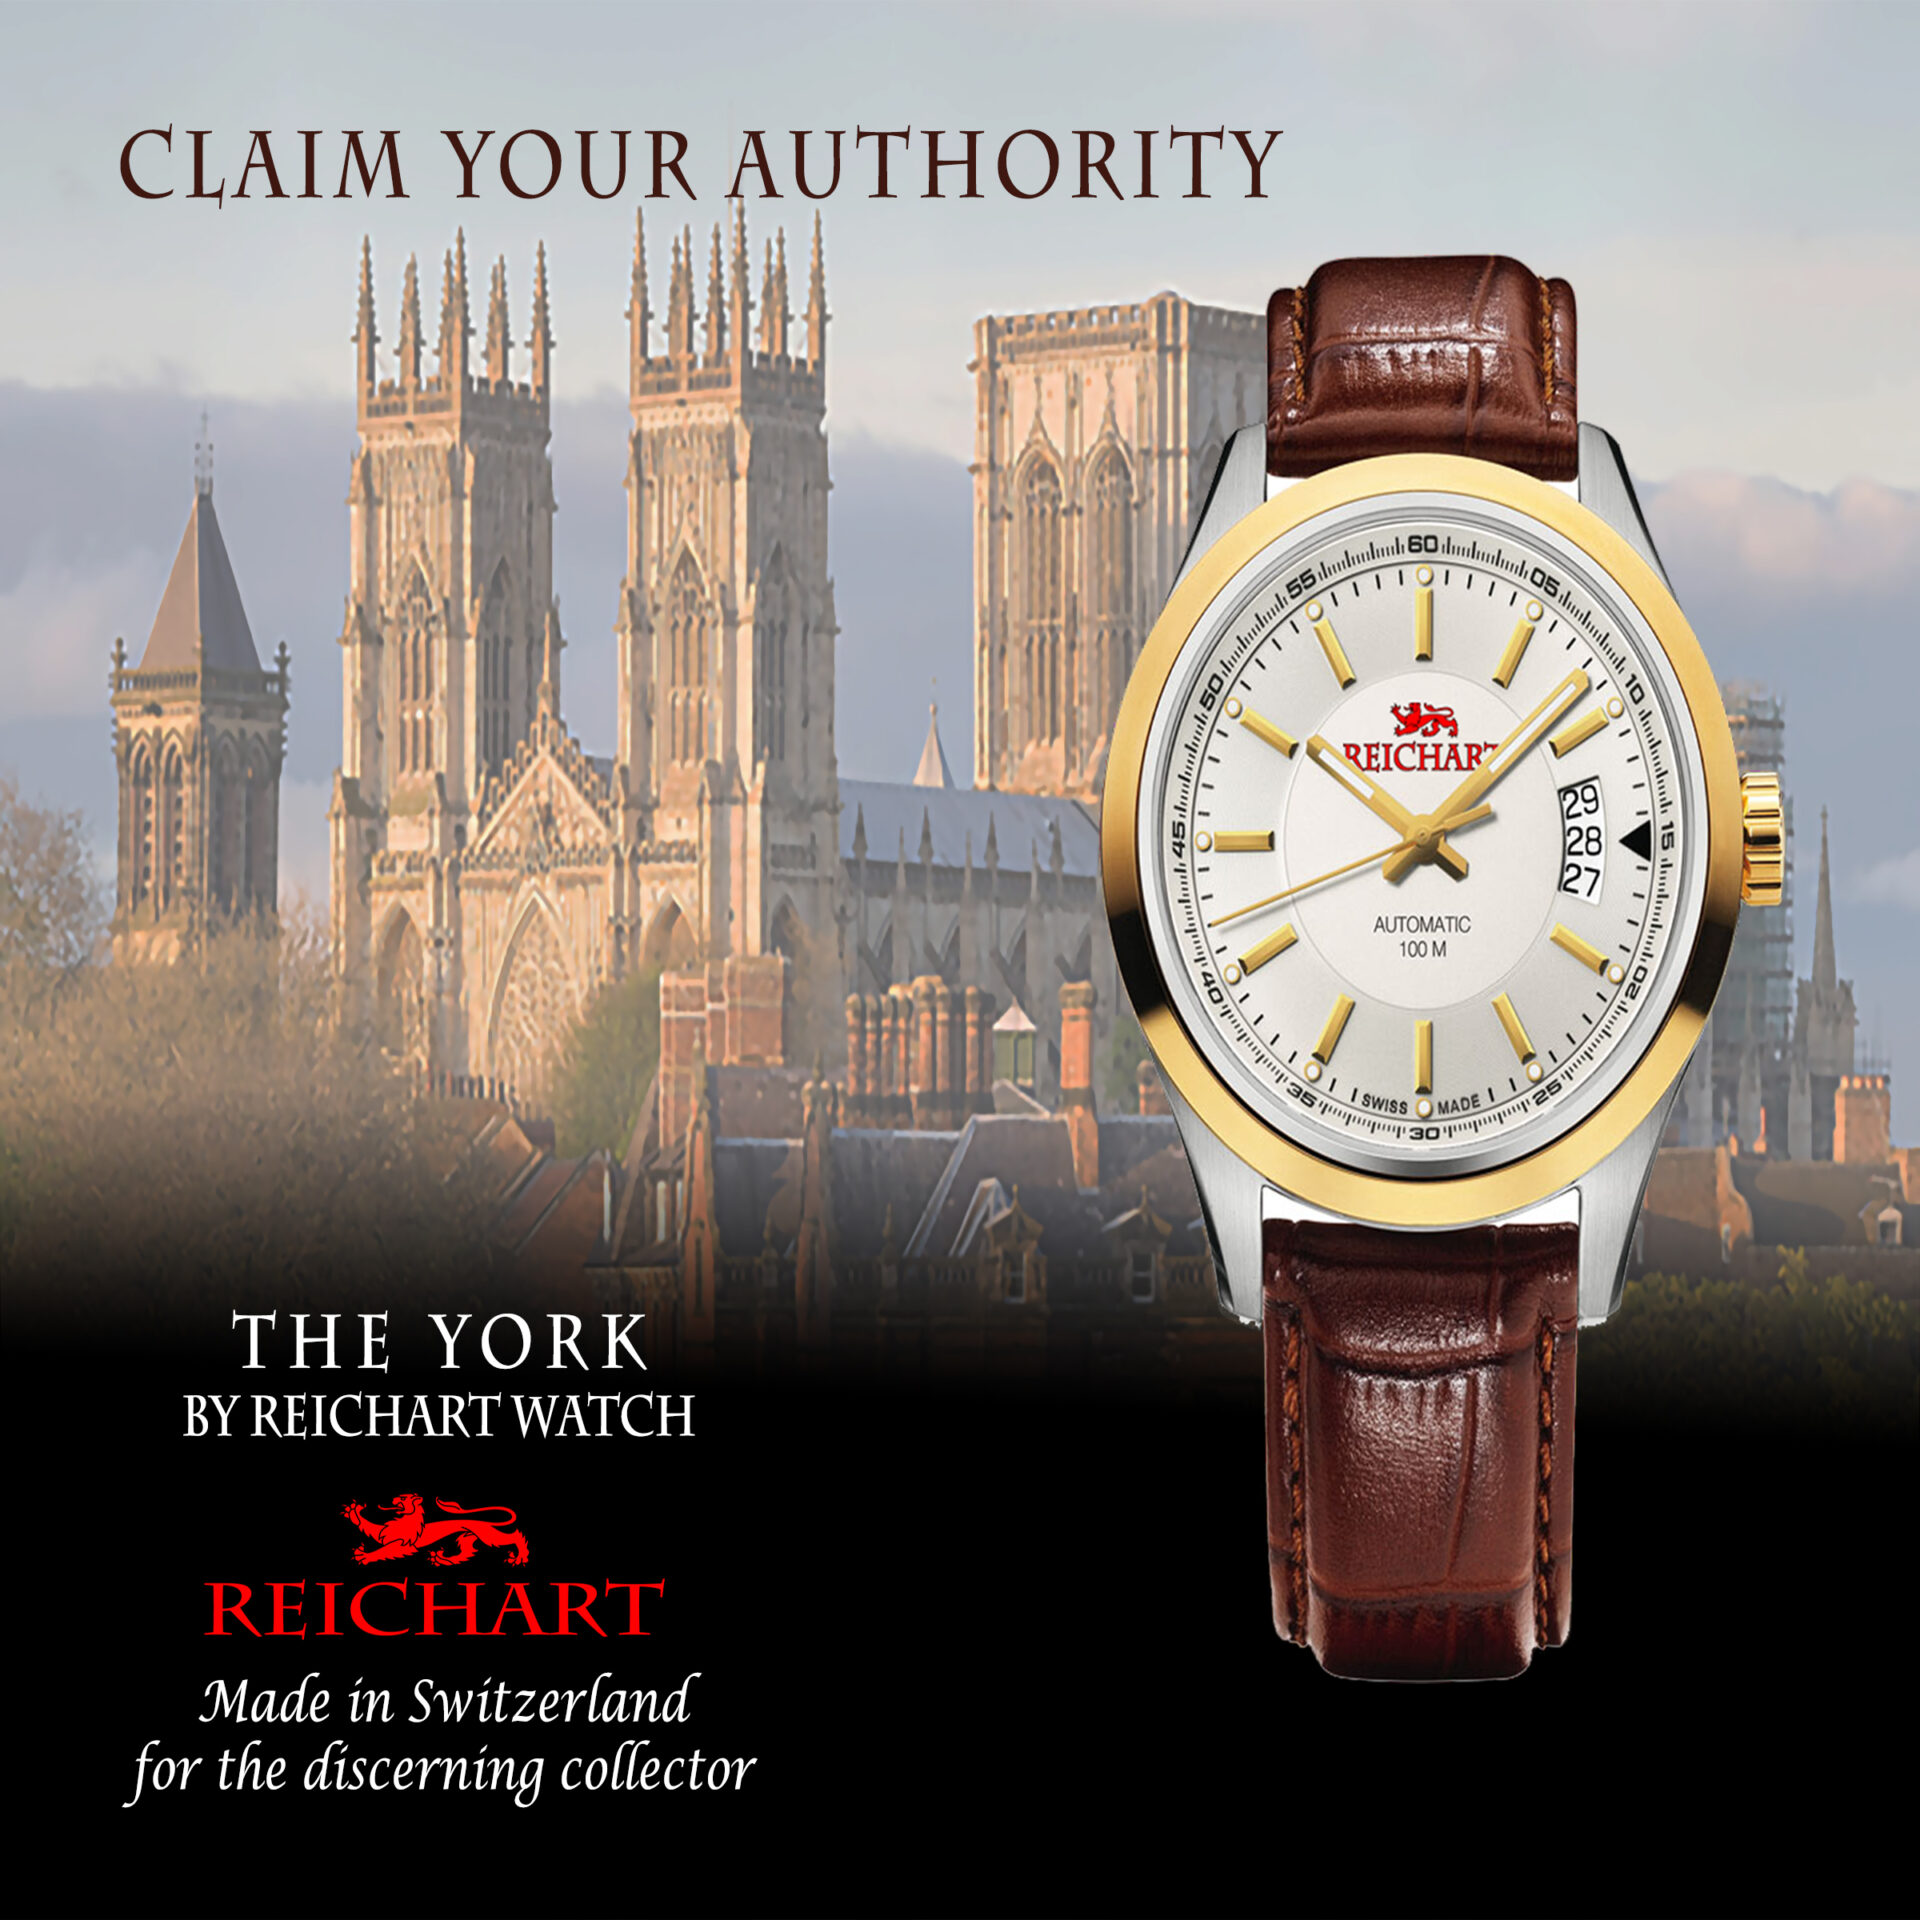 The York by Reichart Watch